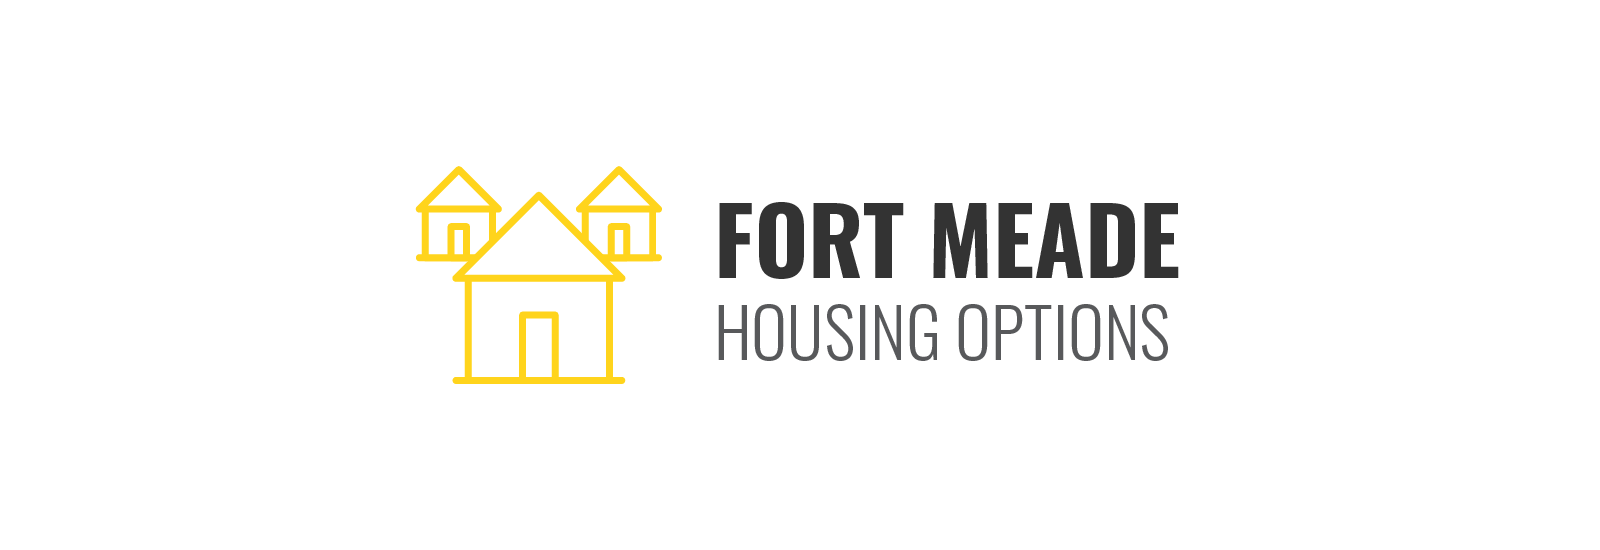 Fort Meade Housing Options